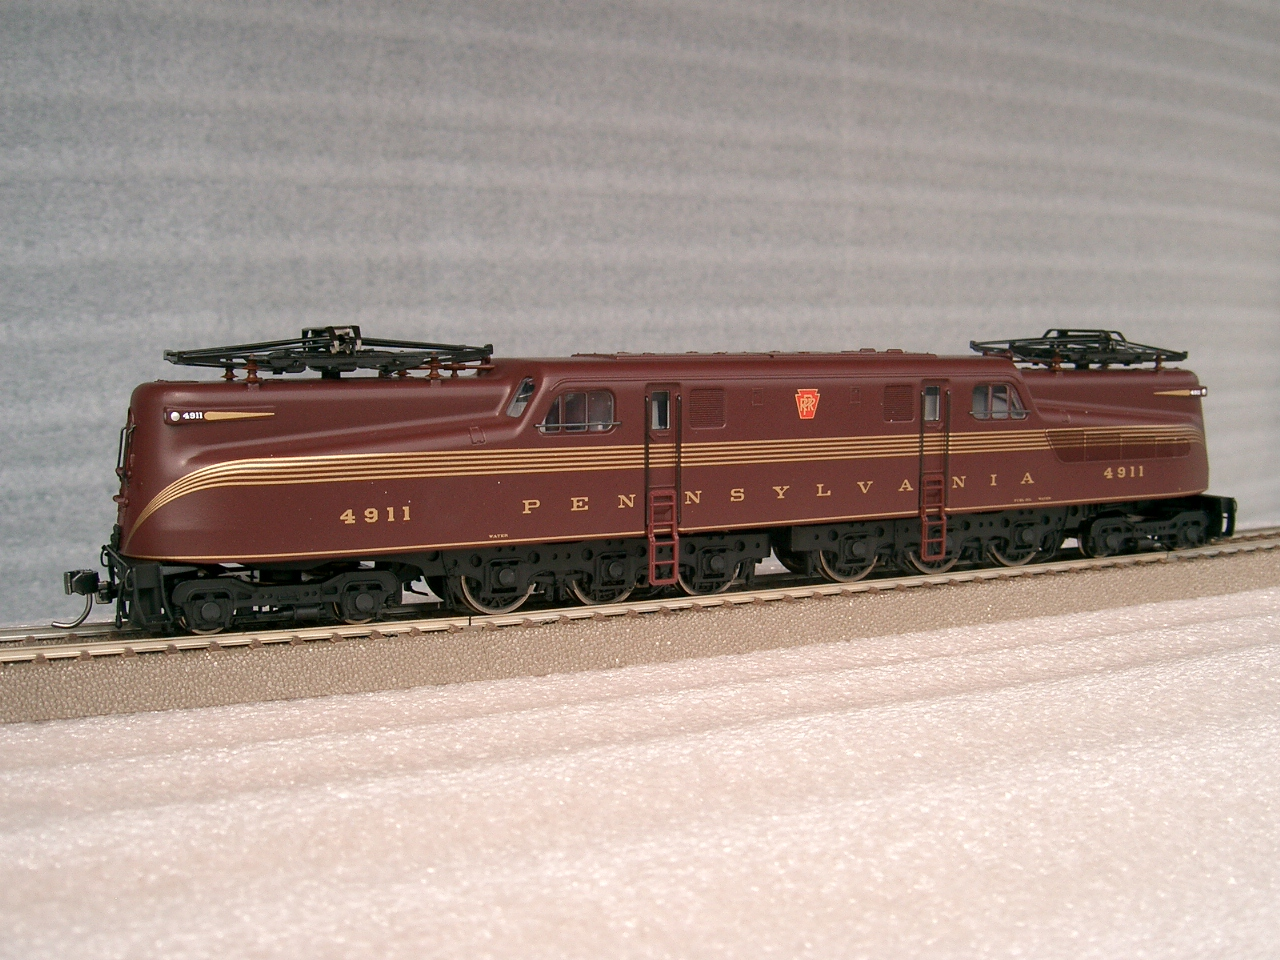 Trix 22812 - PRR class GG-1, Tuscan Red, 5 golden pin-stripes, No.4911, RP 25 wheels.01